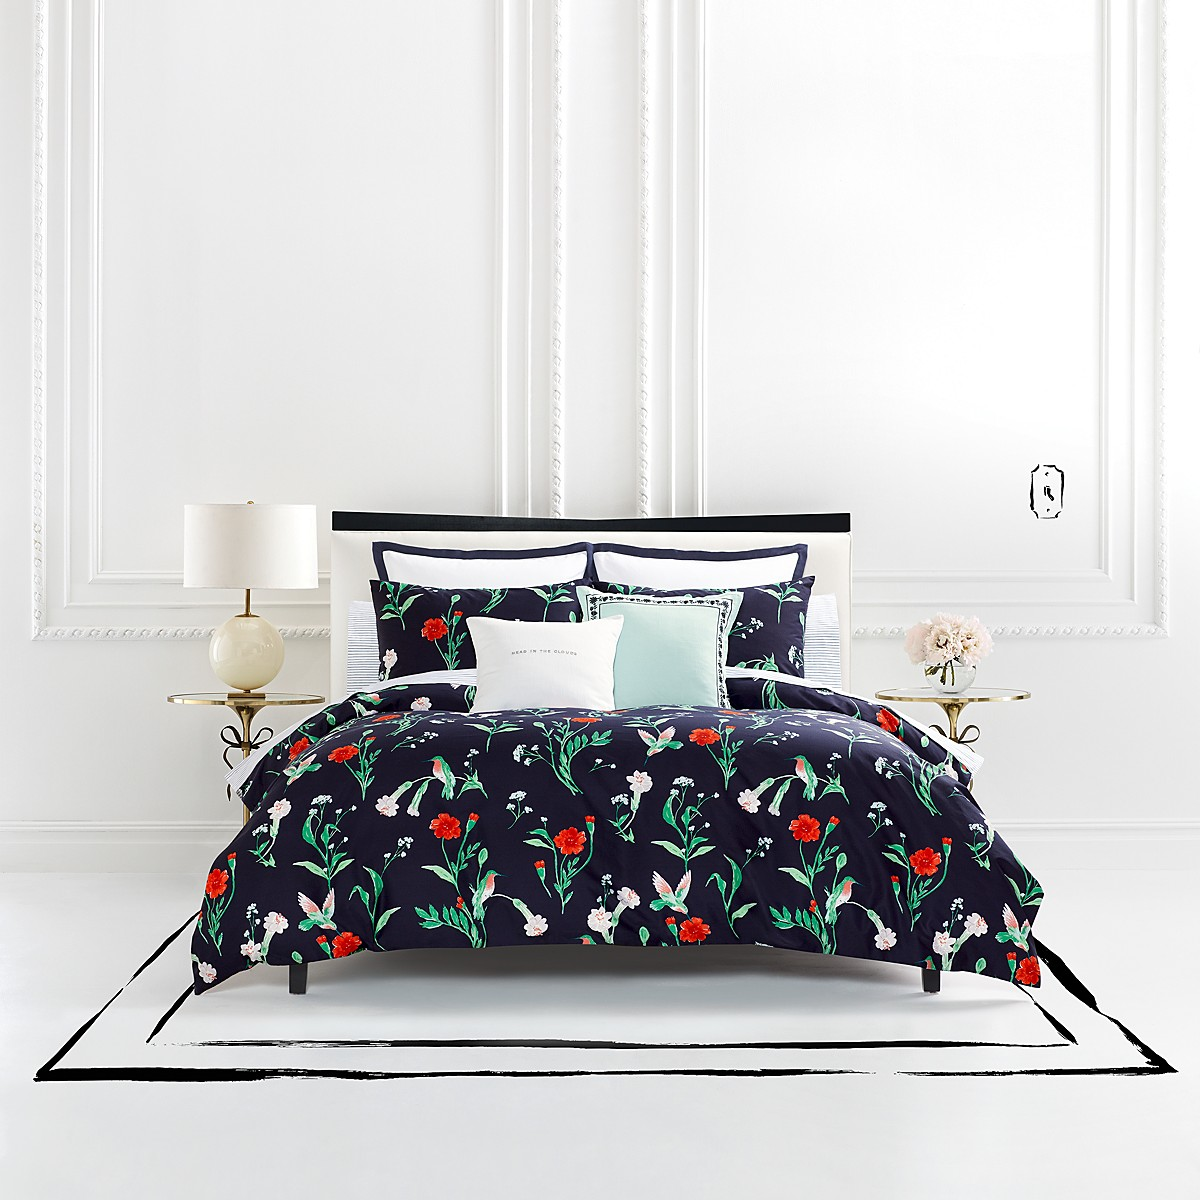 idea sets bedroom simple kate design best spade minimalist ideas of